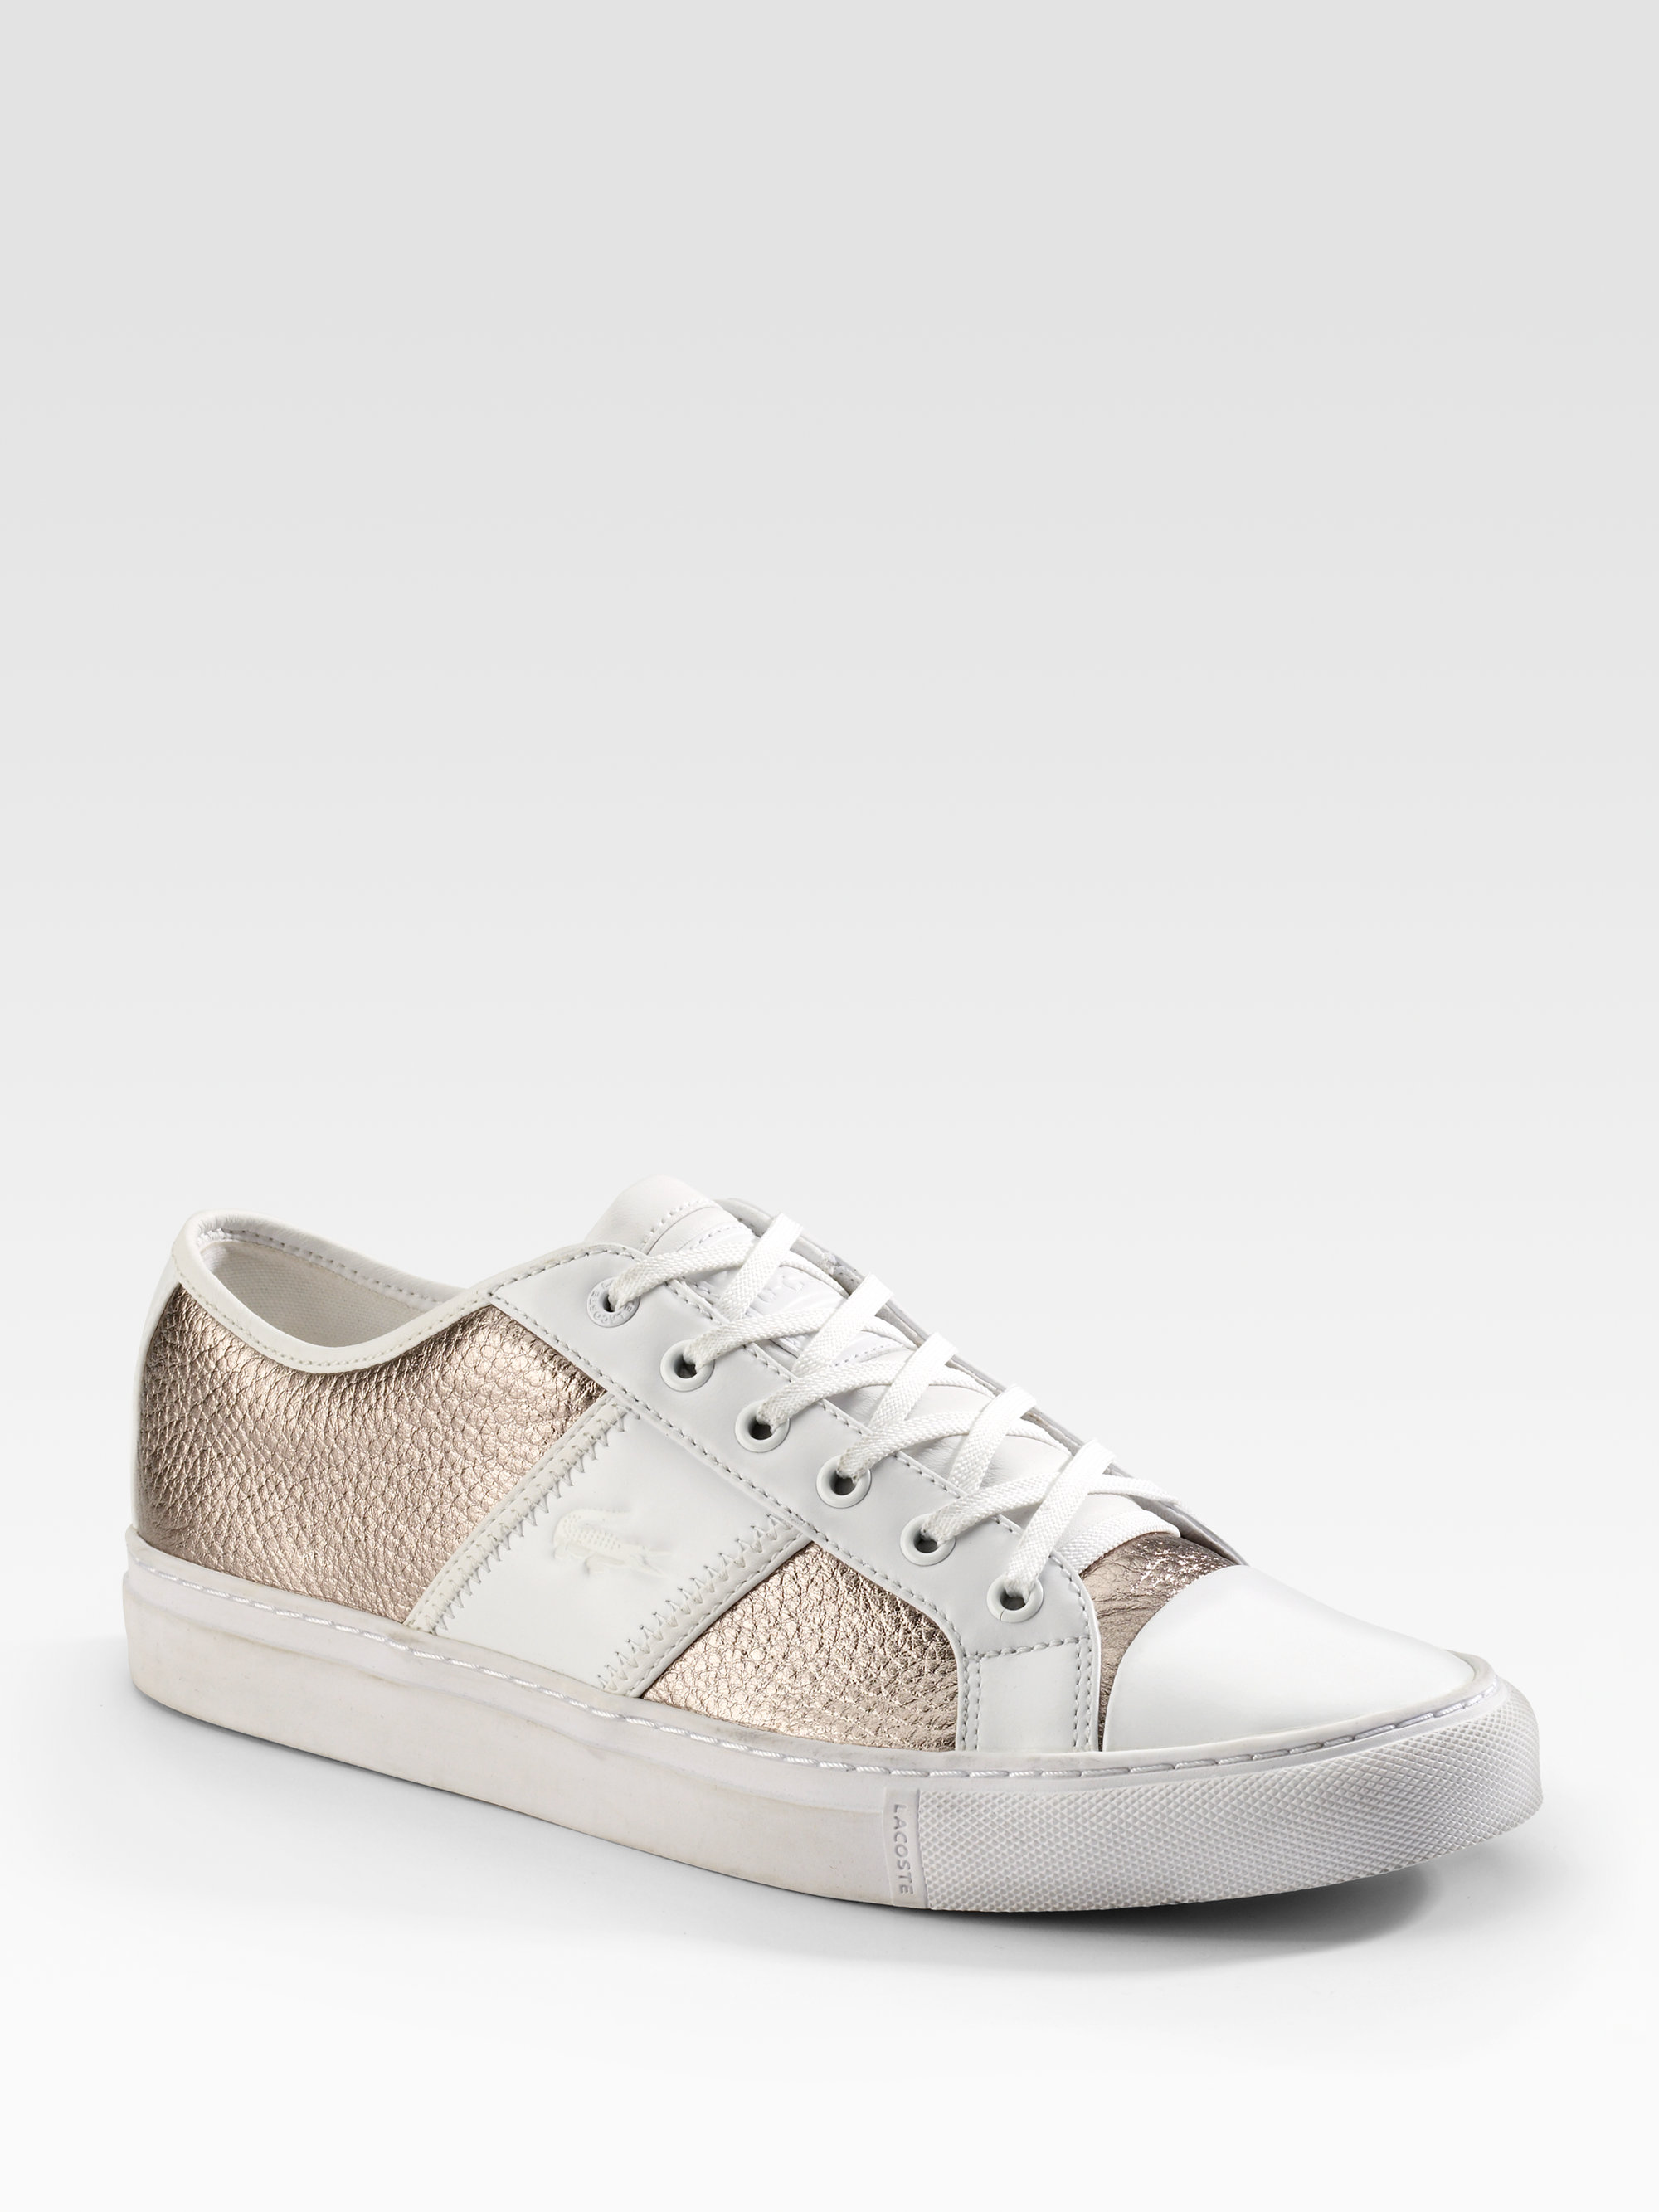 07e341877 Lyst - Lacoste Cerberus Sneakers in Metallic for Men